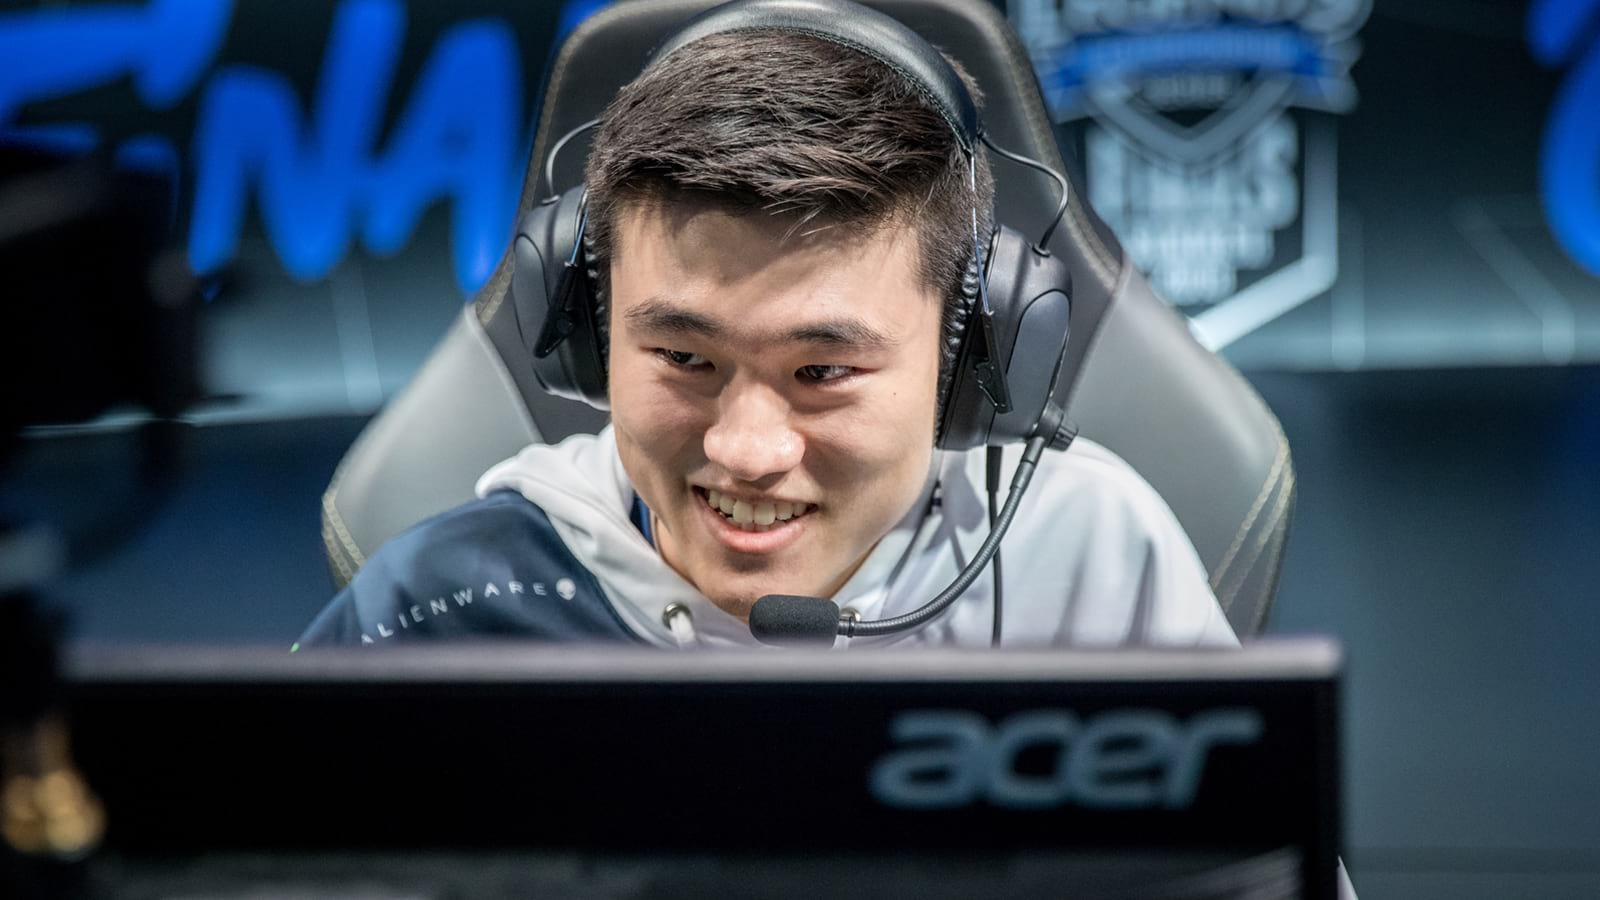 Pobelter in Team Liquid jersey close up on stage at LCS